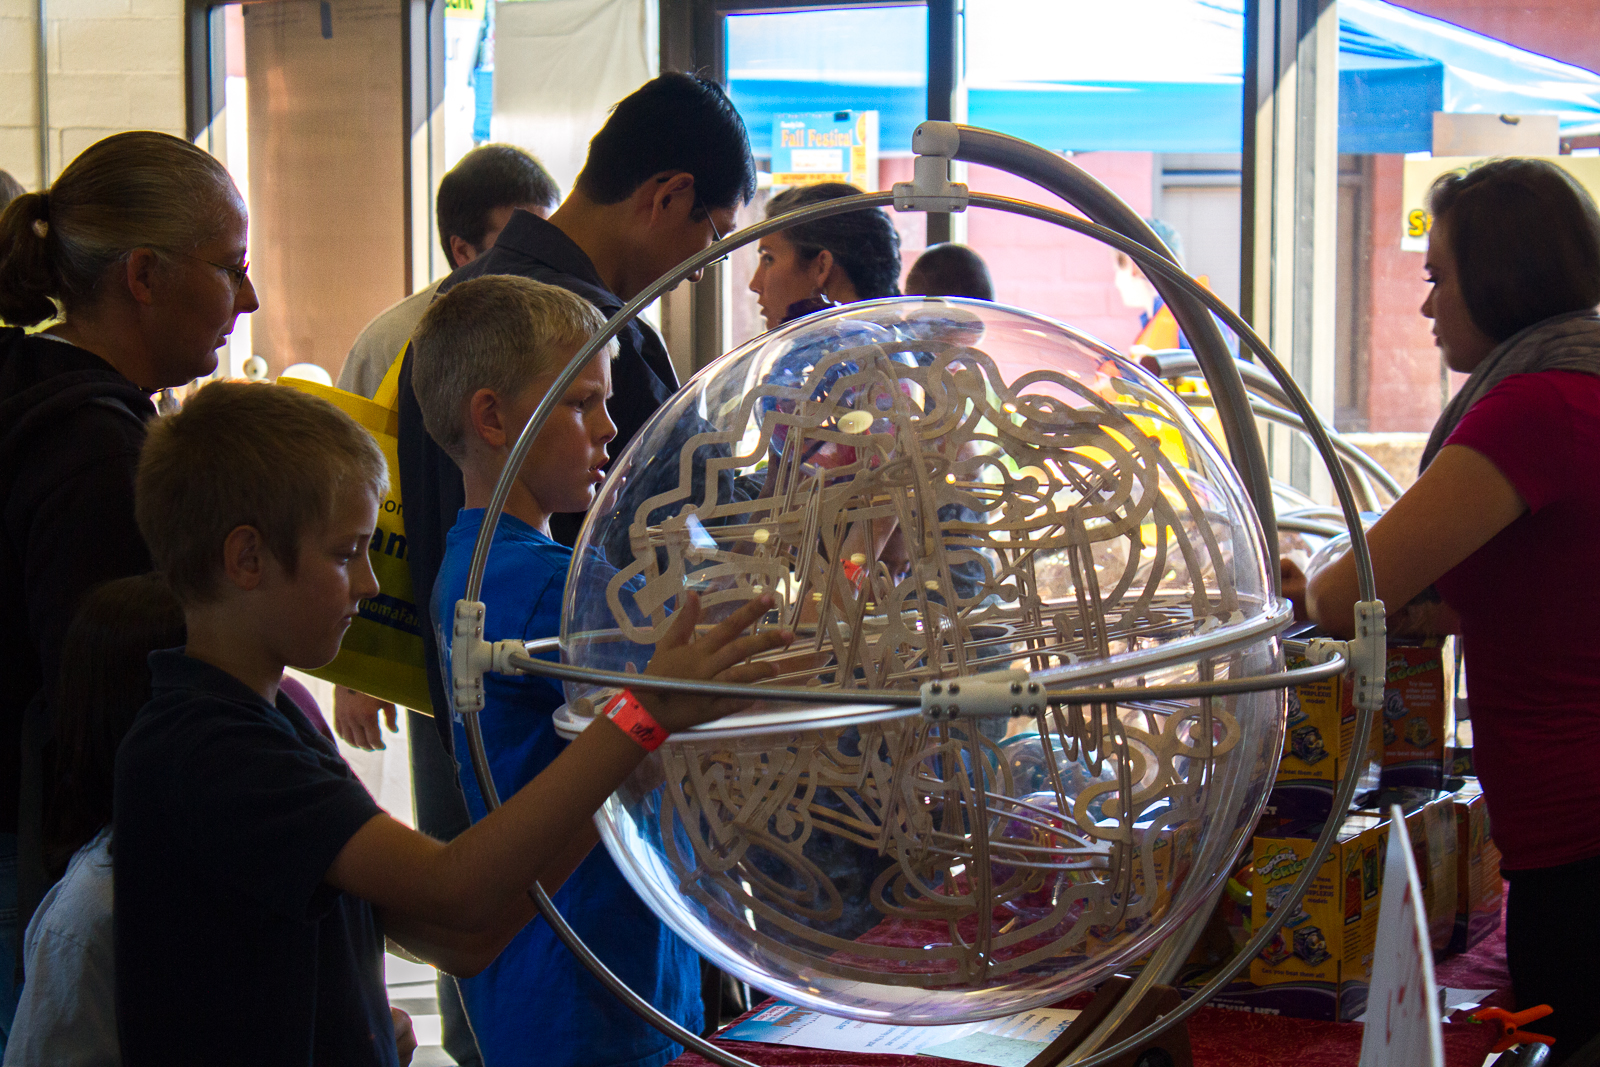 Recapping a Big Weekend for Bay Area Mini Maker Faires